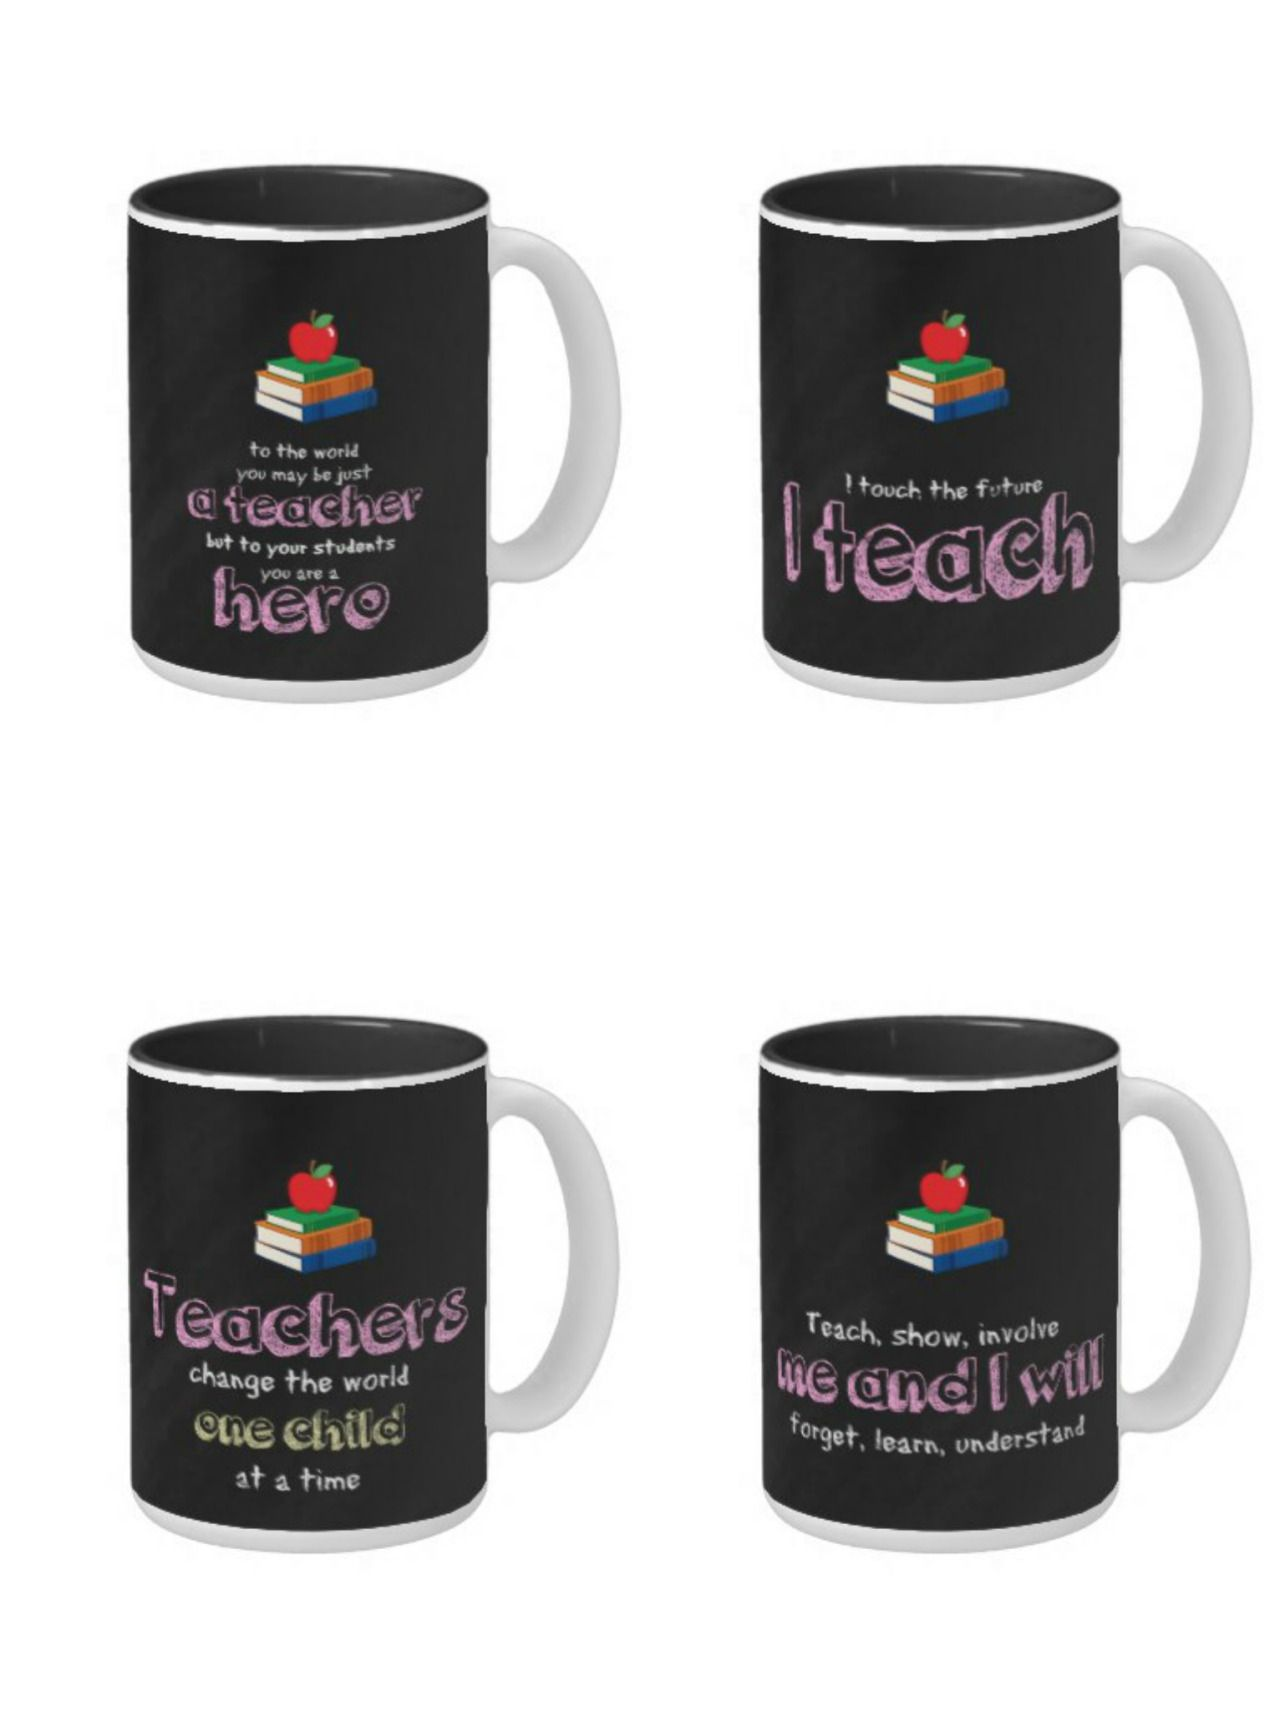 #teacher #giftideas #quote #mugs available in different products with 2 text colors (blue & red) Check more at www.zazzle.com/celebrationideas/teacher